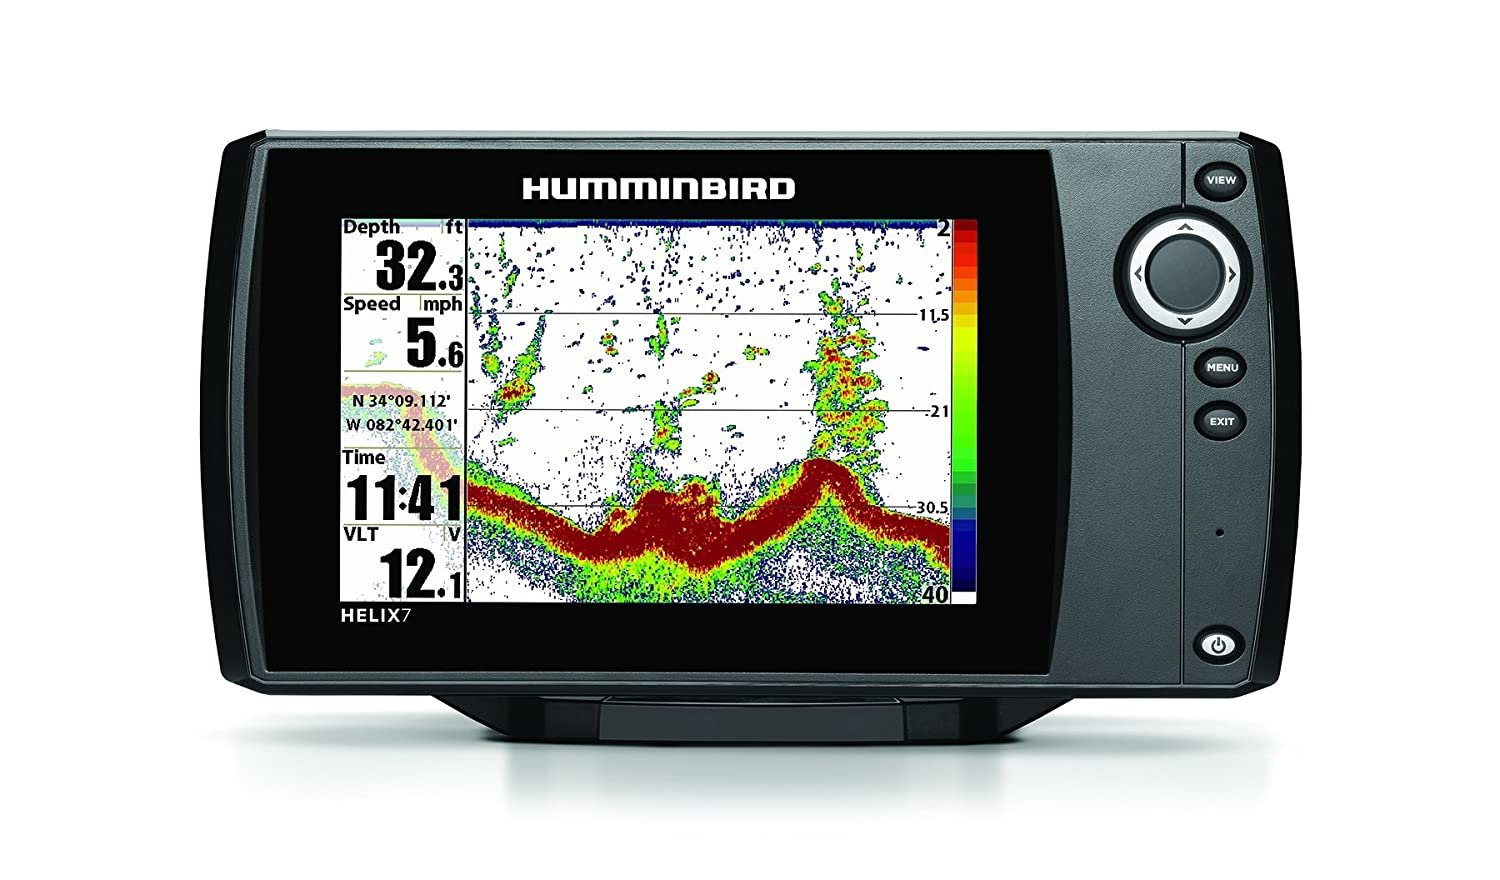 Humminbird 409790-1 Helix 7 Fishfinder with Dual Beam Plus Sonar